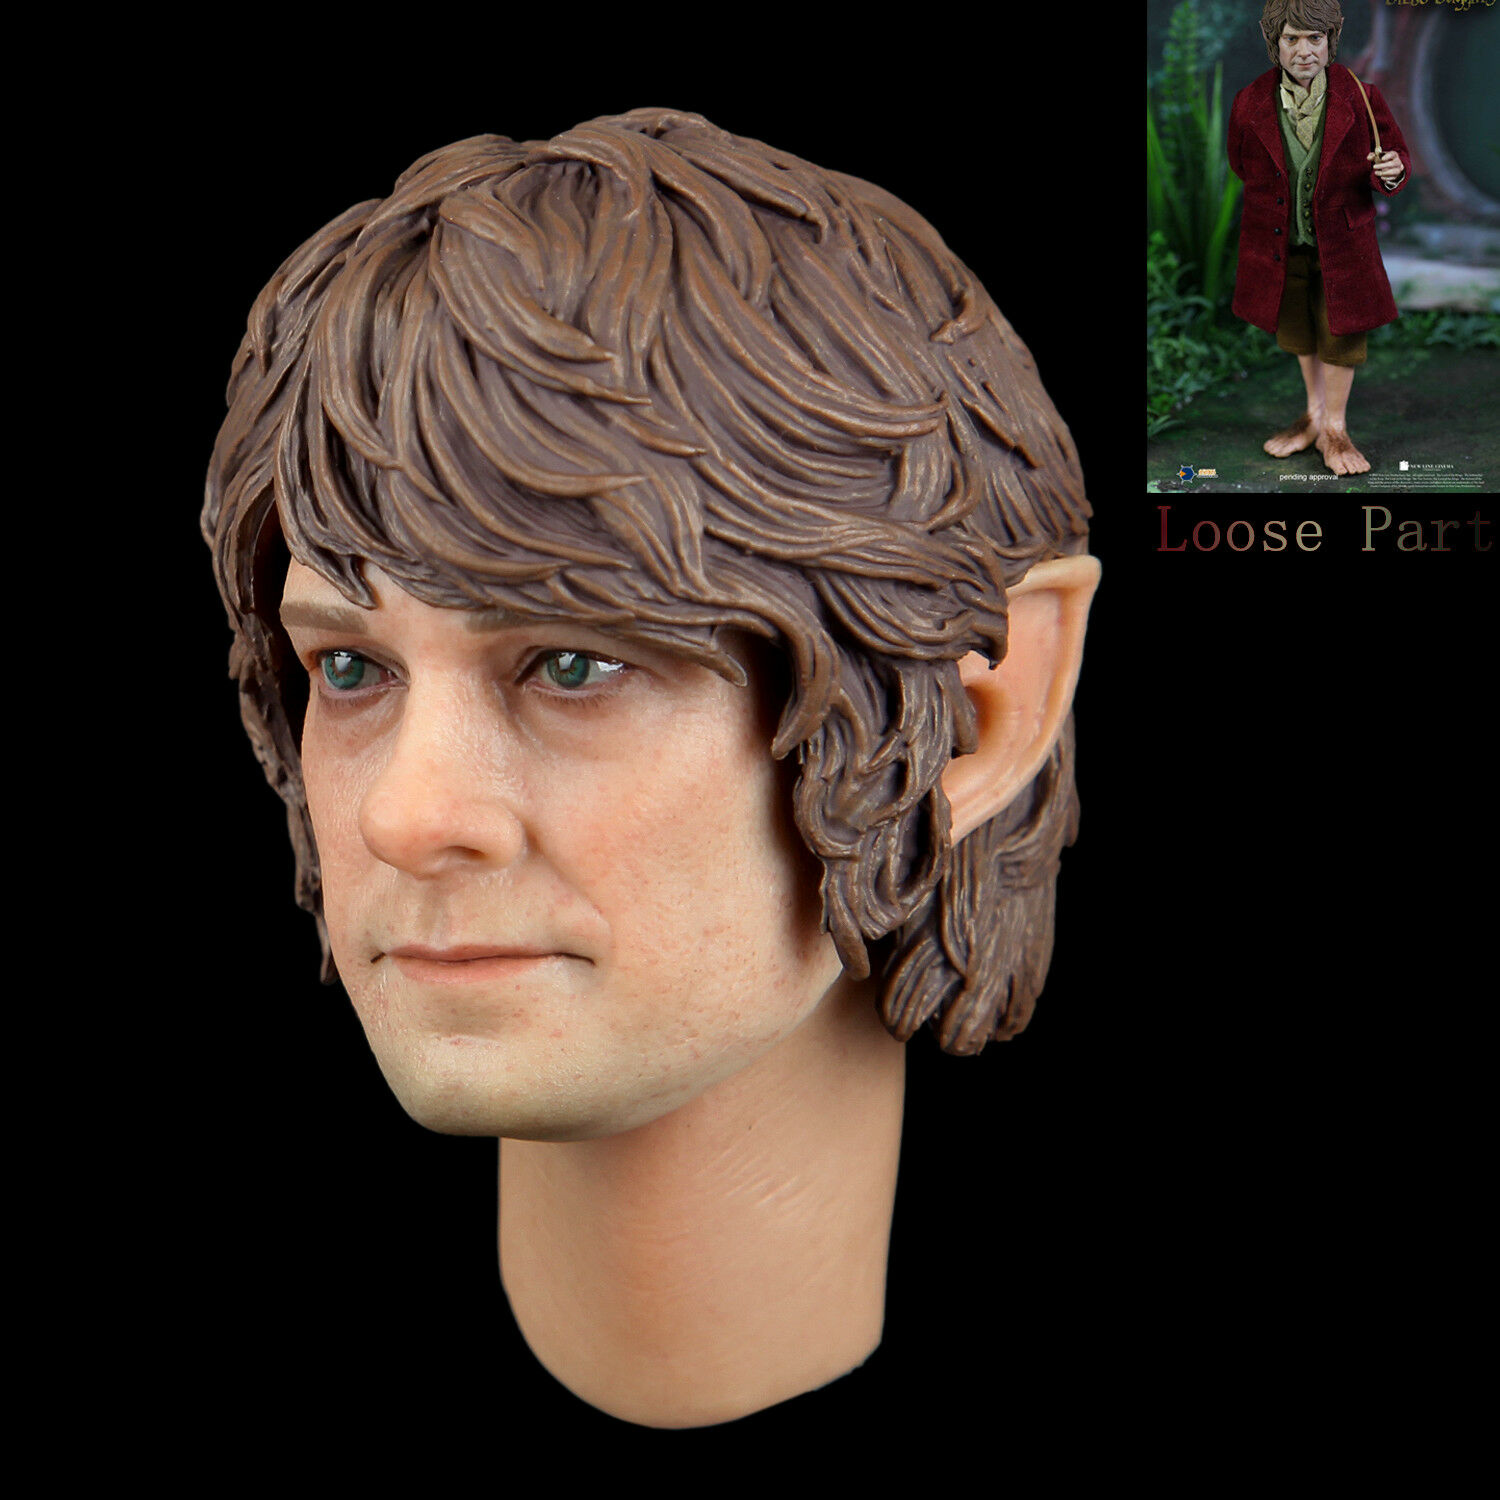 Asmus giocattoli HOBT07 1  6 The Lord of the Rings Bilbo borsagins cifra Head Sculpt  stile classico